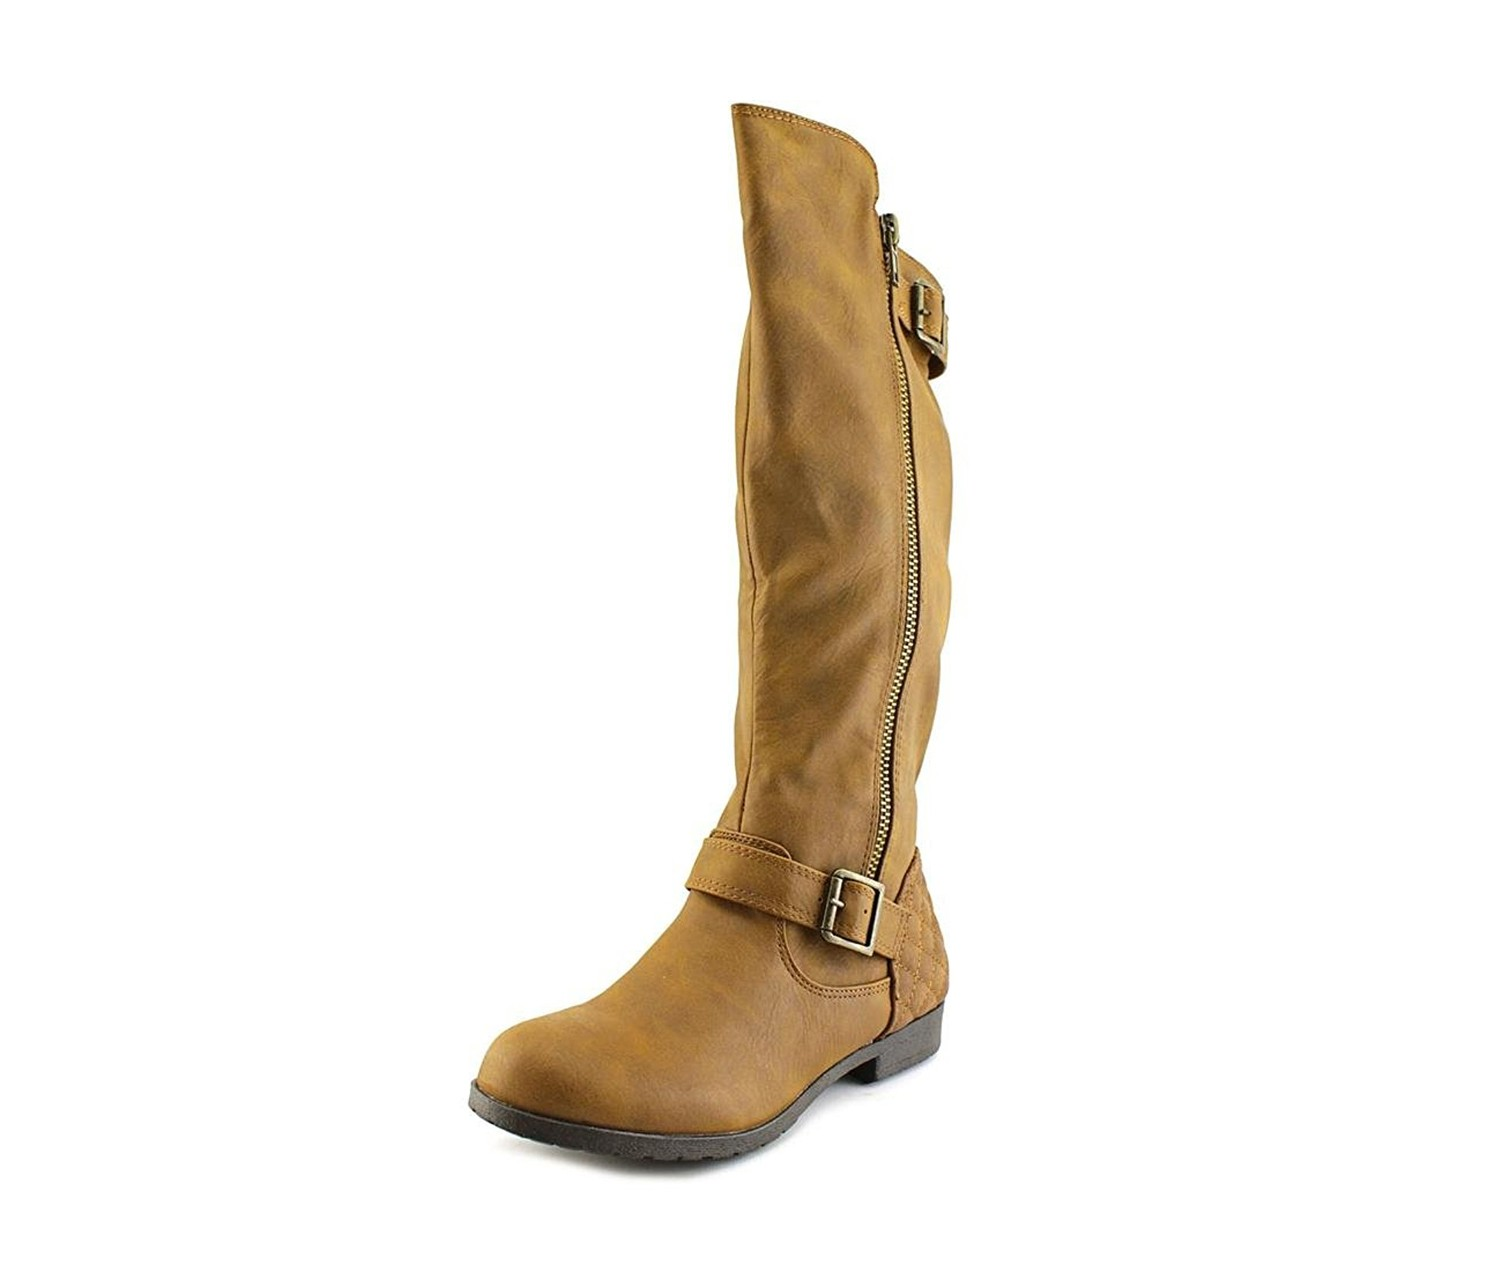 toe synthetic brown knee high boot cognac